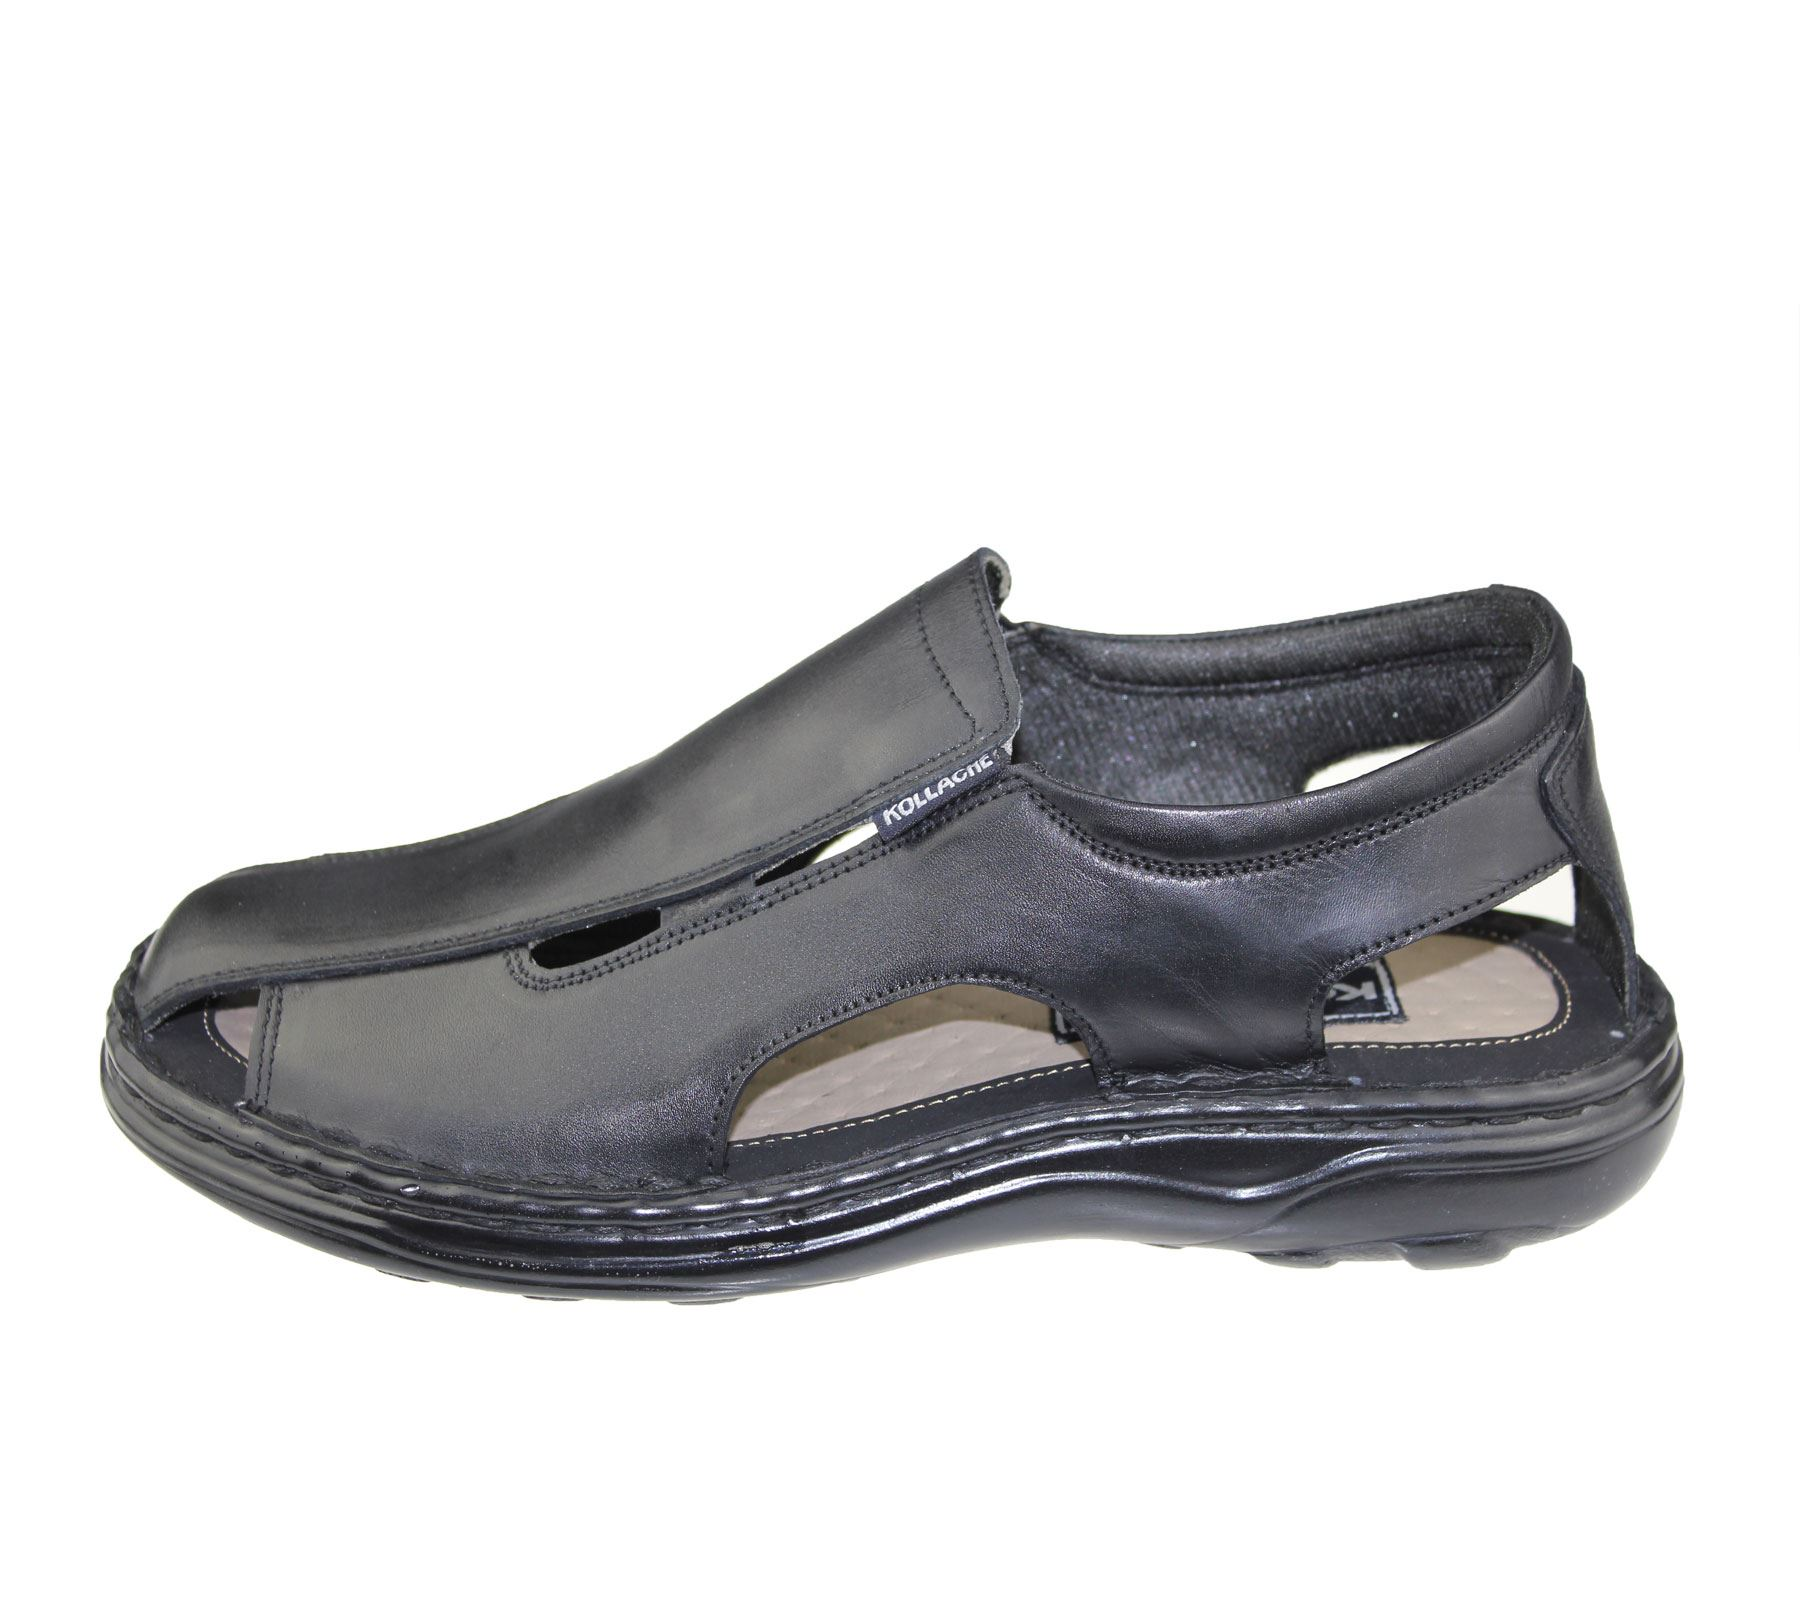 mens slip on sandals casual fashion casual walking